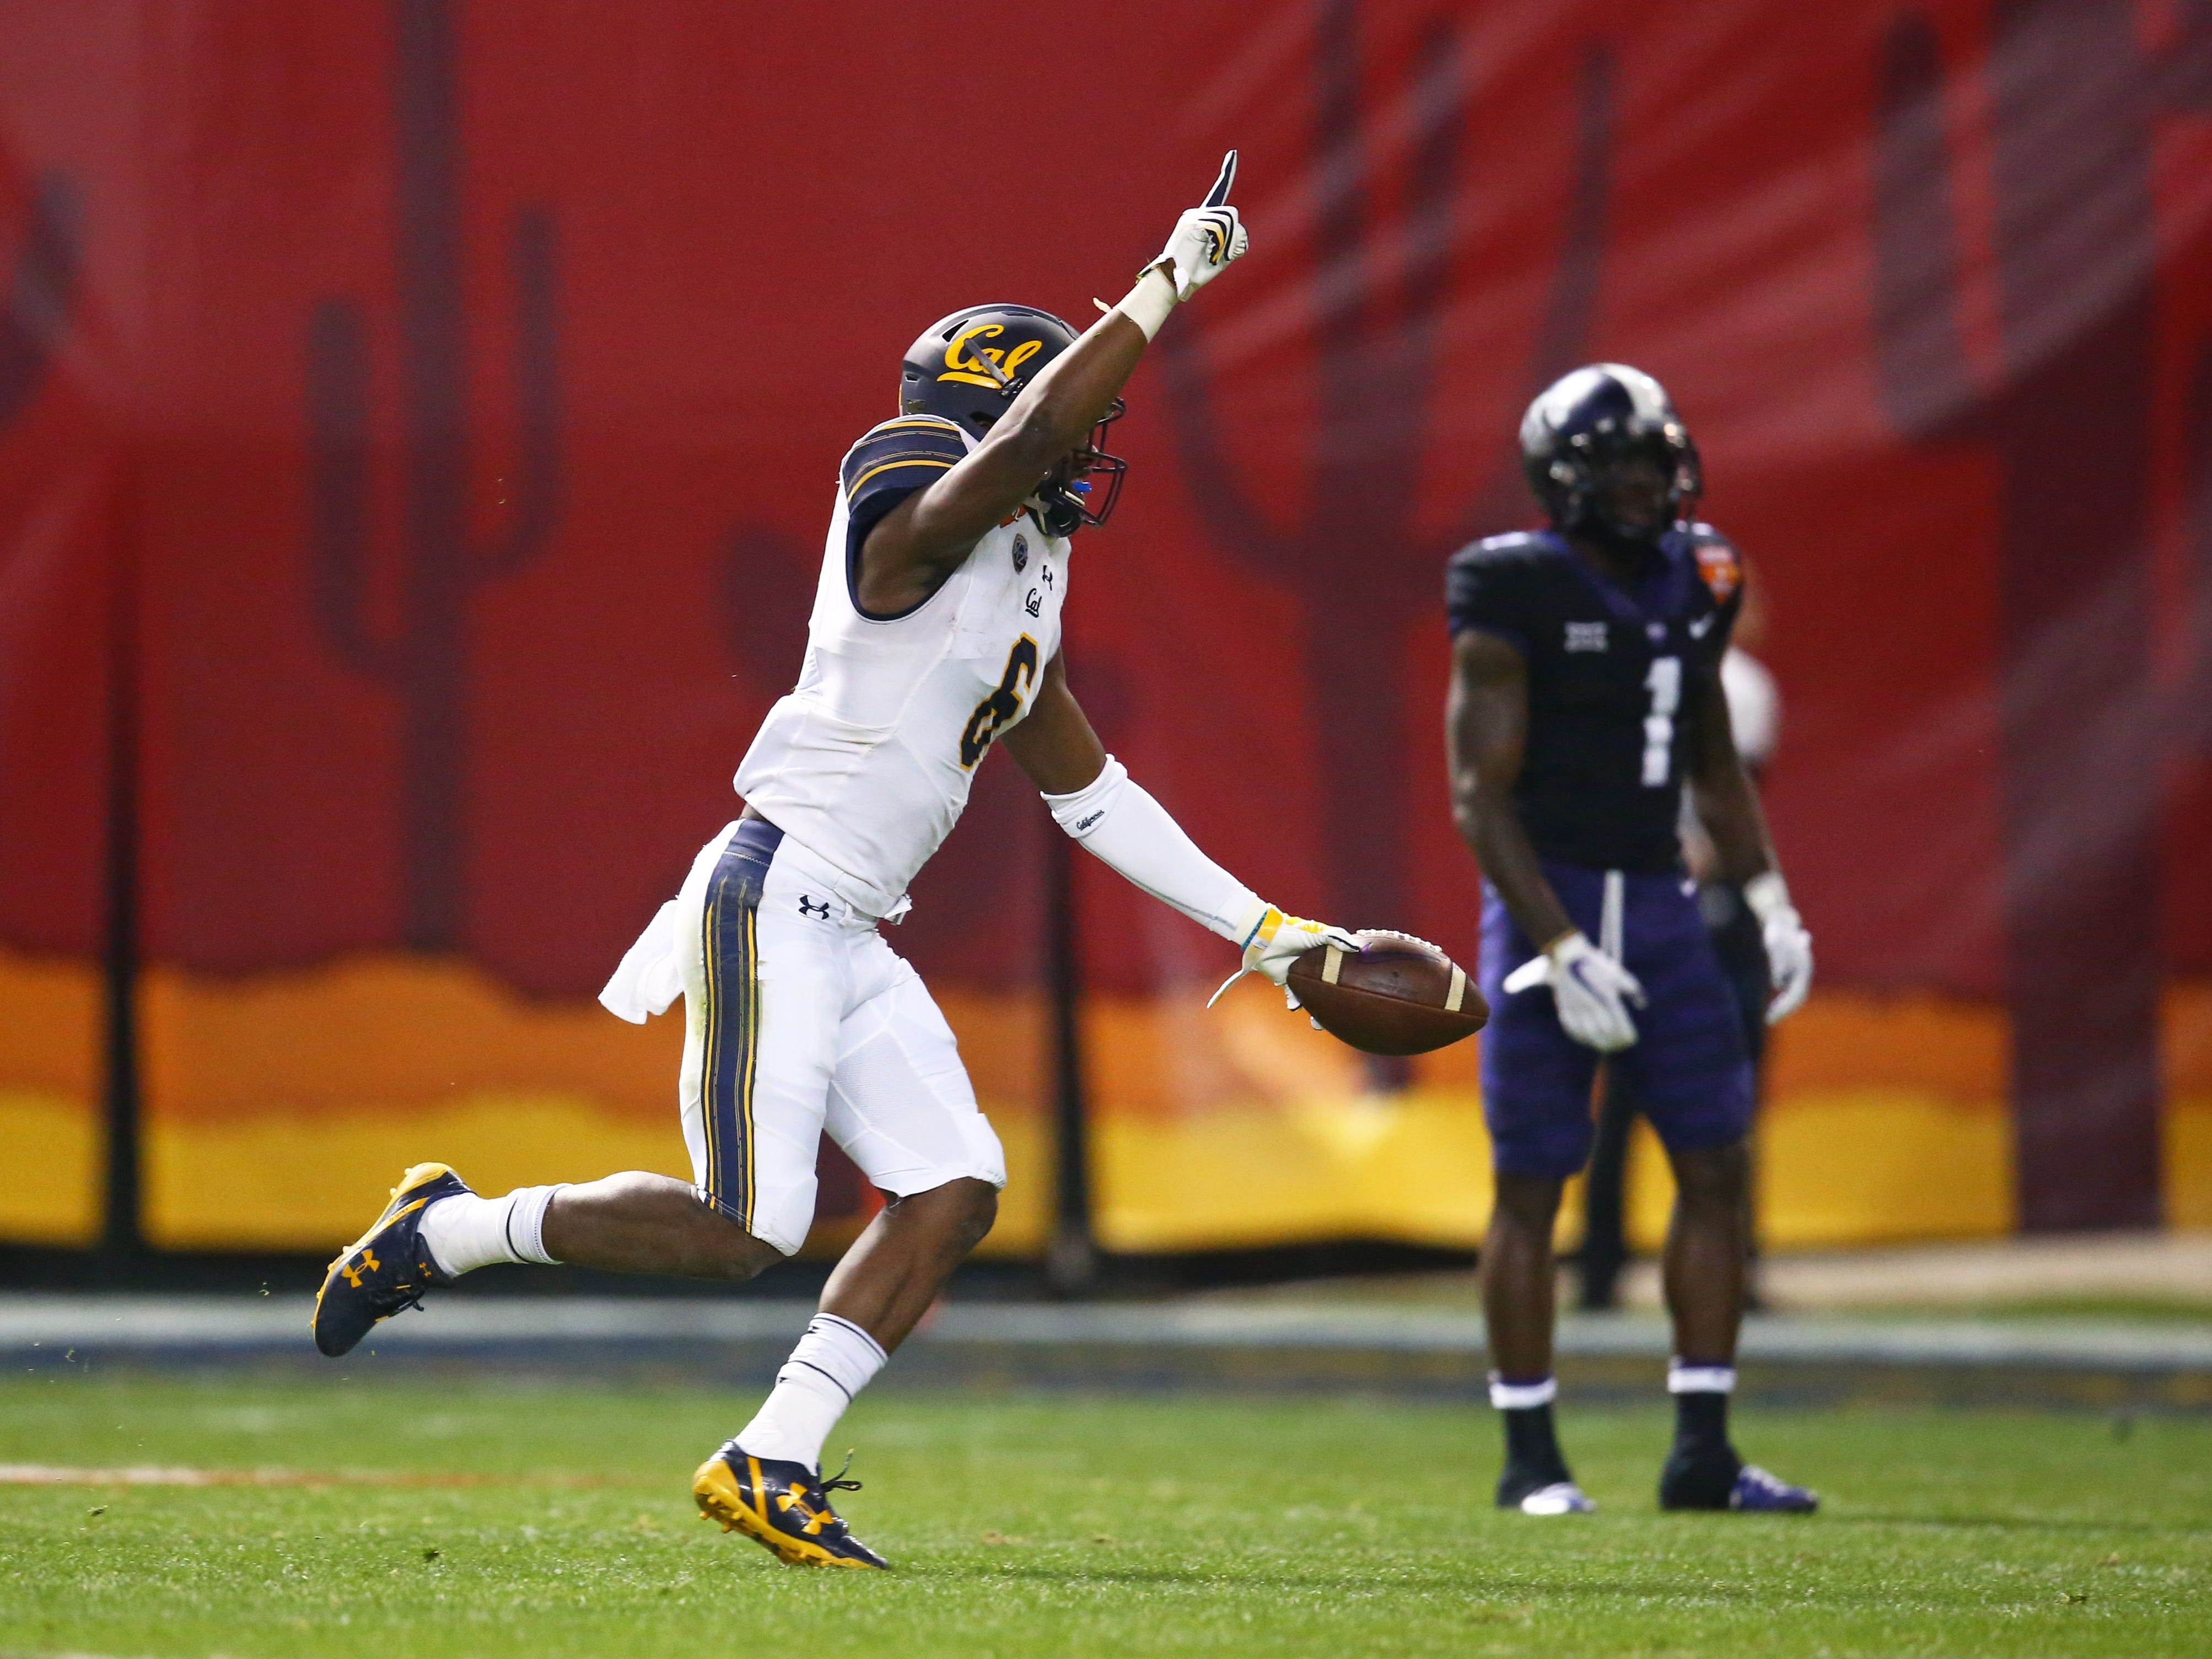 Dec 26, 2018; Phoenix, AZ, USA; California Golden Bears safety Jaylinn Hawkins (6) celebrates after an interception against the Texas Christian Horned Frogs in the first half of the 2018 Cheez-It Bowl at Chase Field.